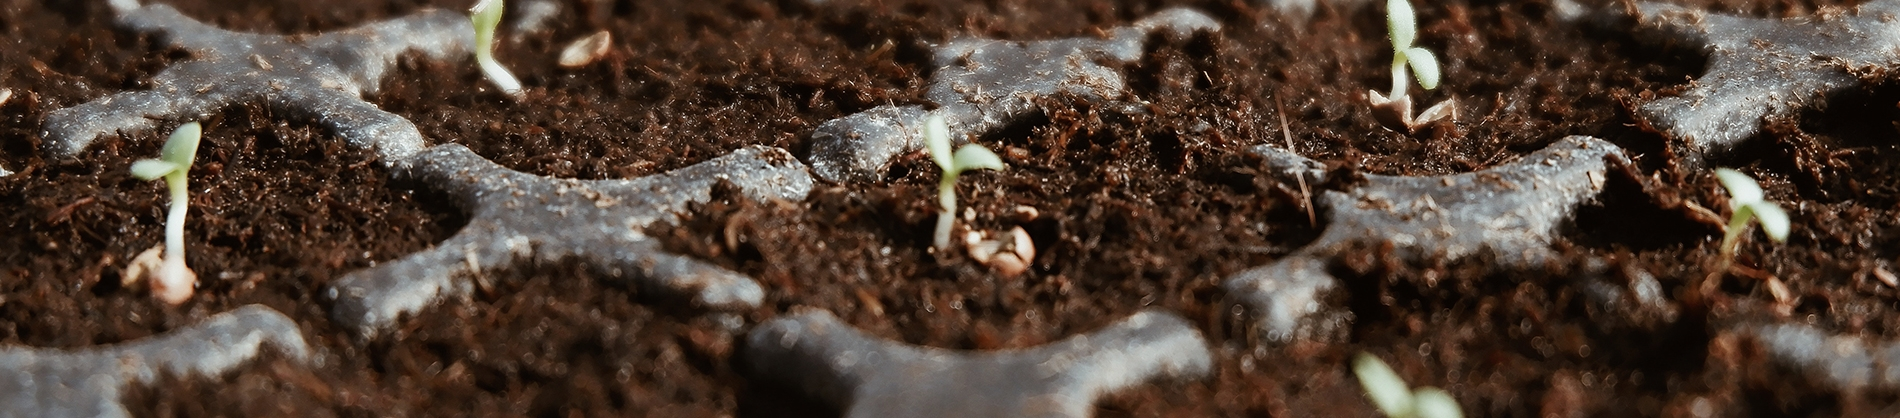 Small seeds planted in soil